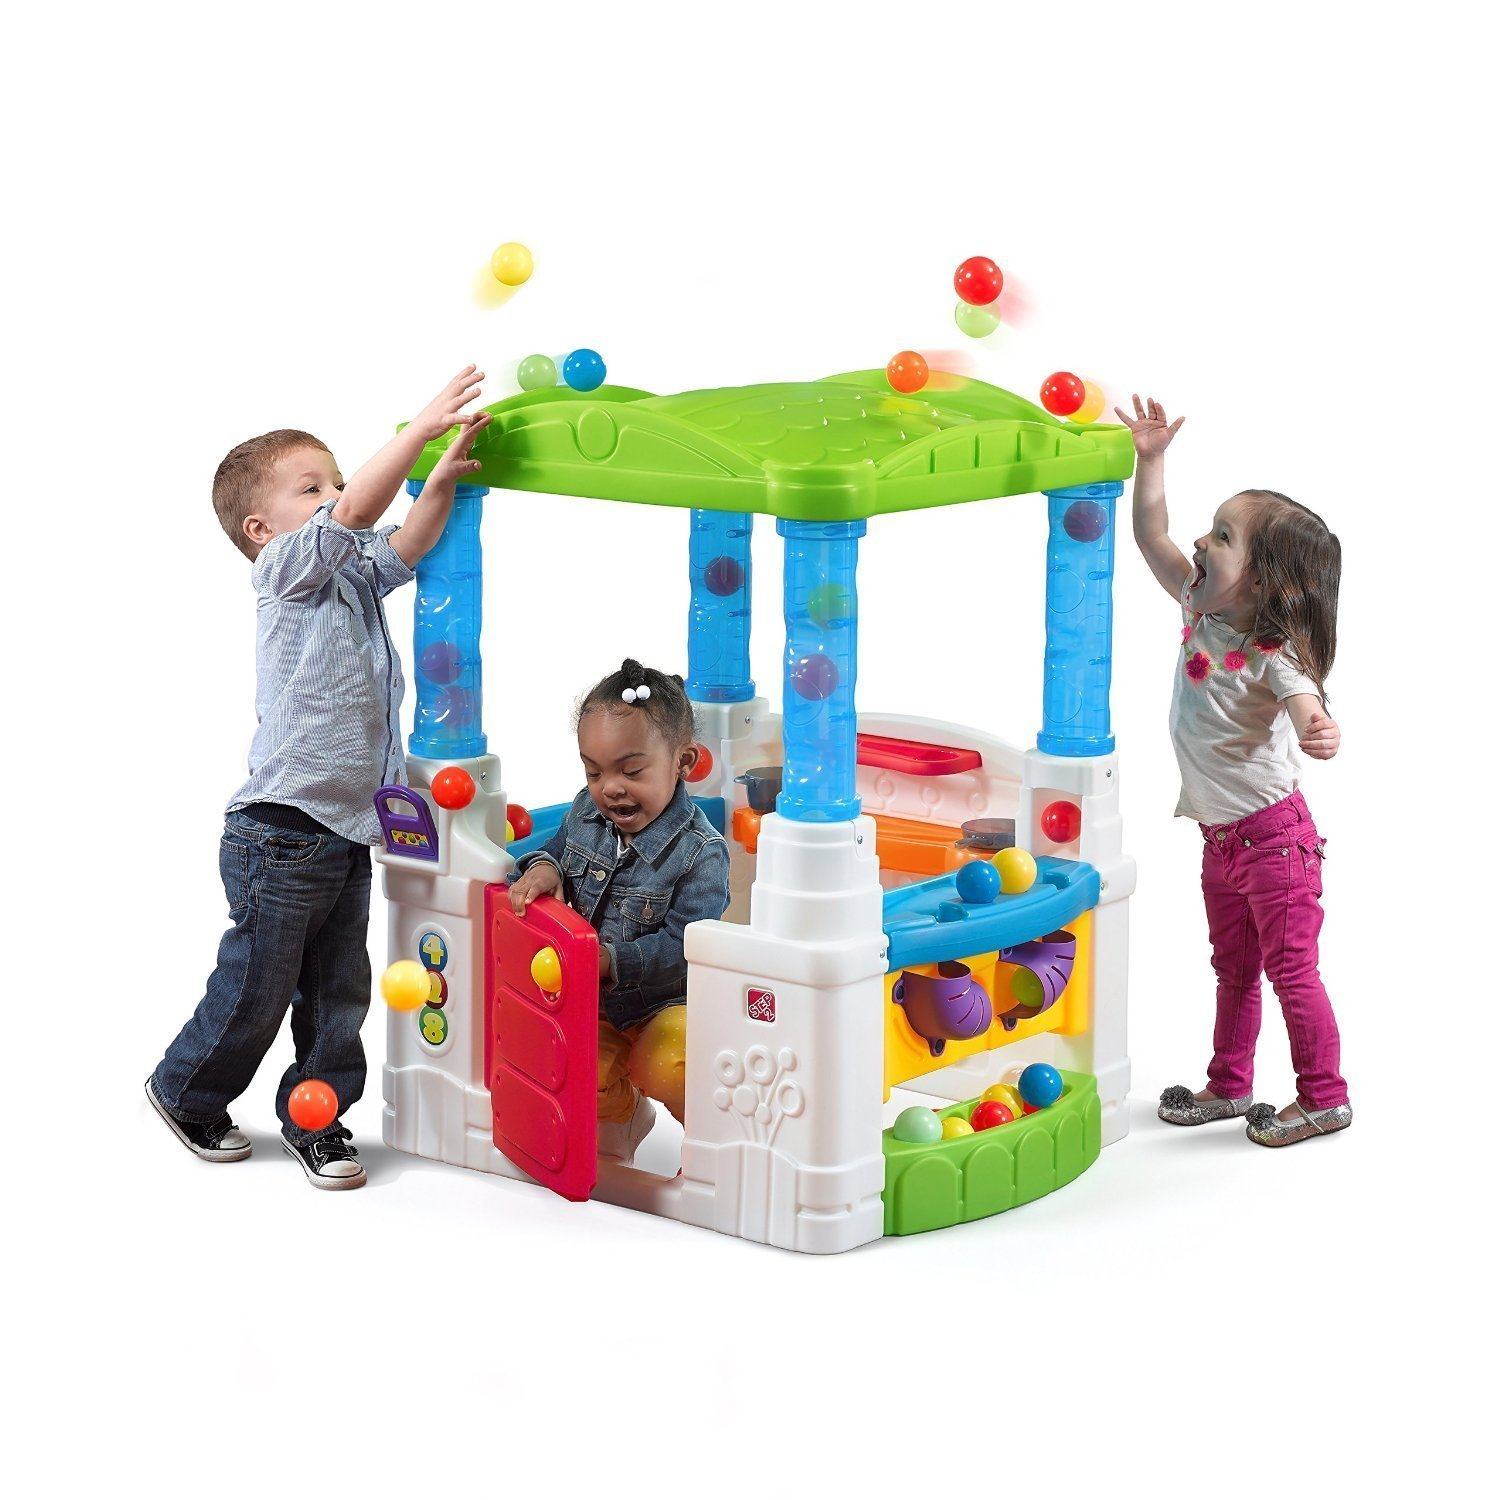 Best Selling Fun Indoor Outdoor Kids Toddlers Playhouse Activity Learning Center With Bright Colors And Balls- Great Fun Year-Round- Sharpens Learning Curve and Motor Skills- Fun For All Kids